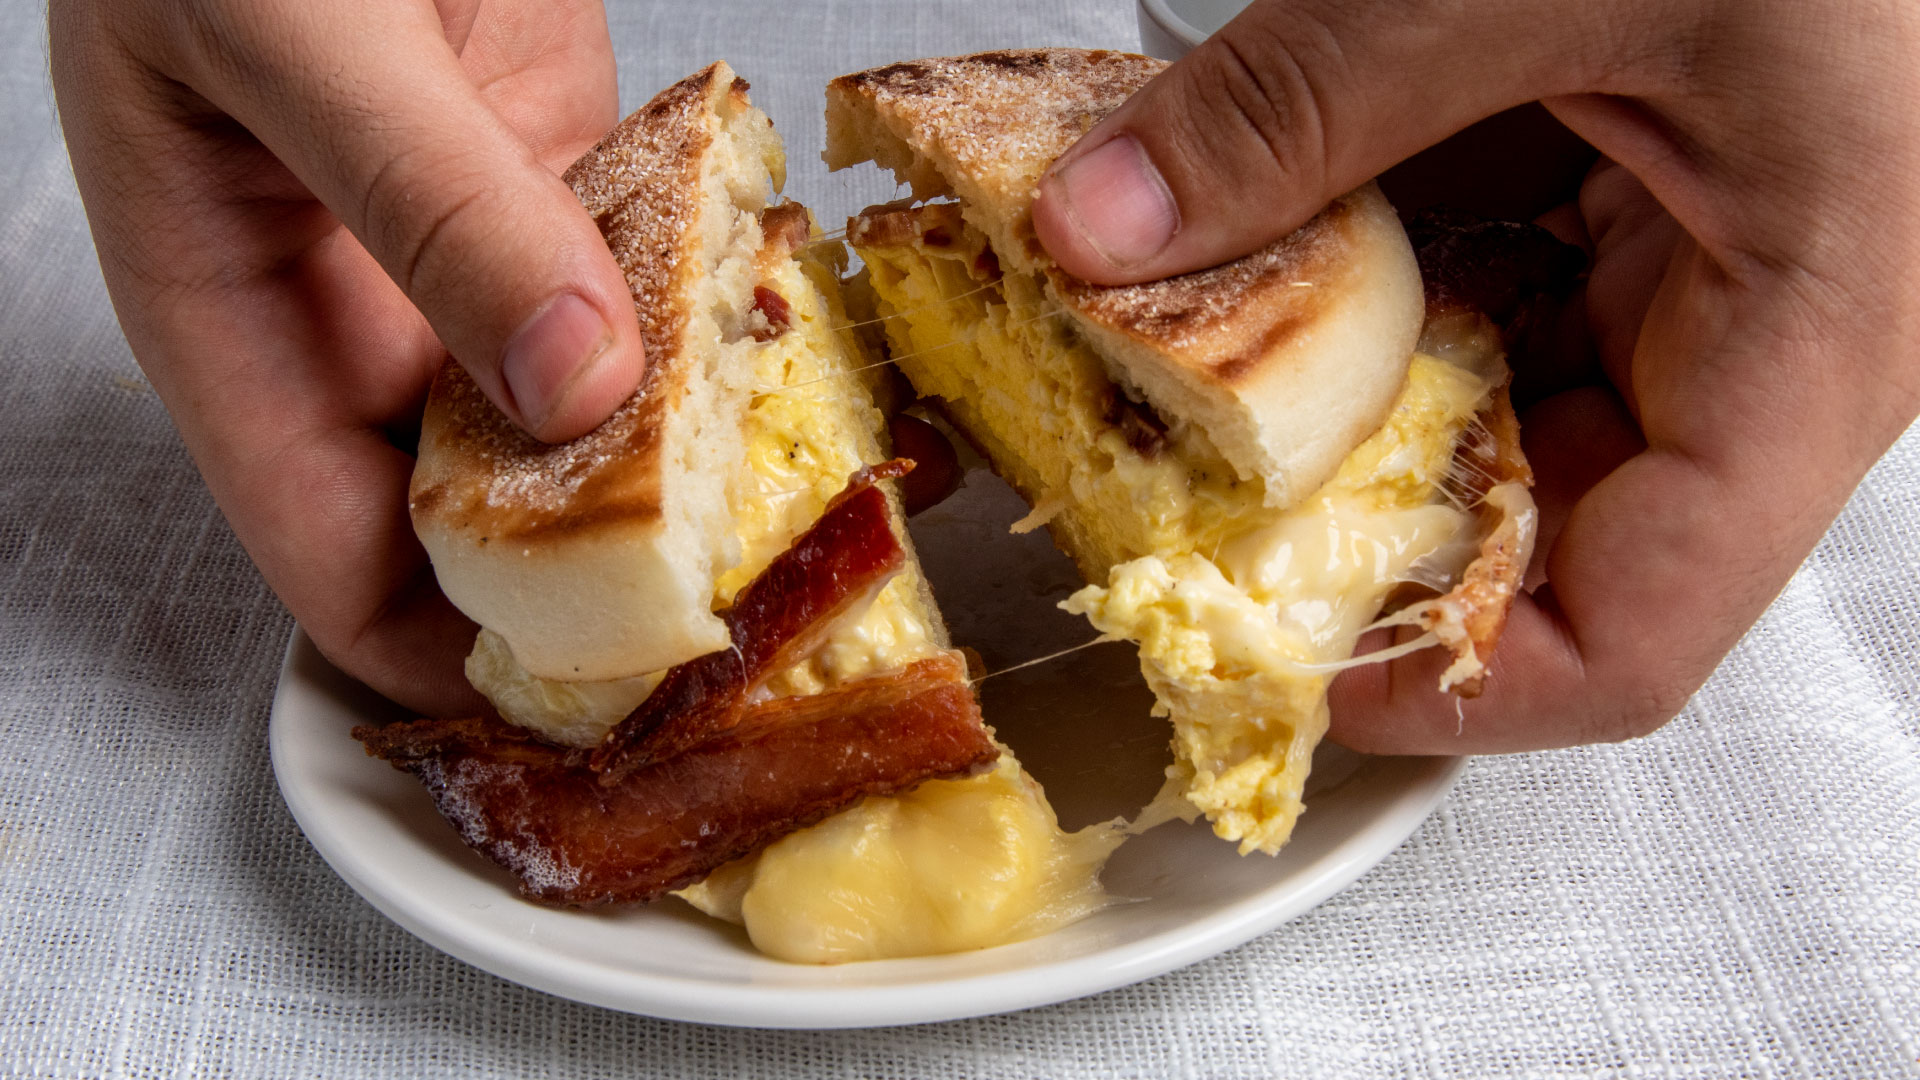 Murray's Ultimate Bacon, Egg & Cheese